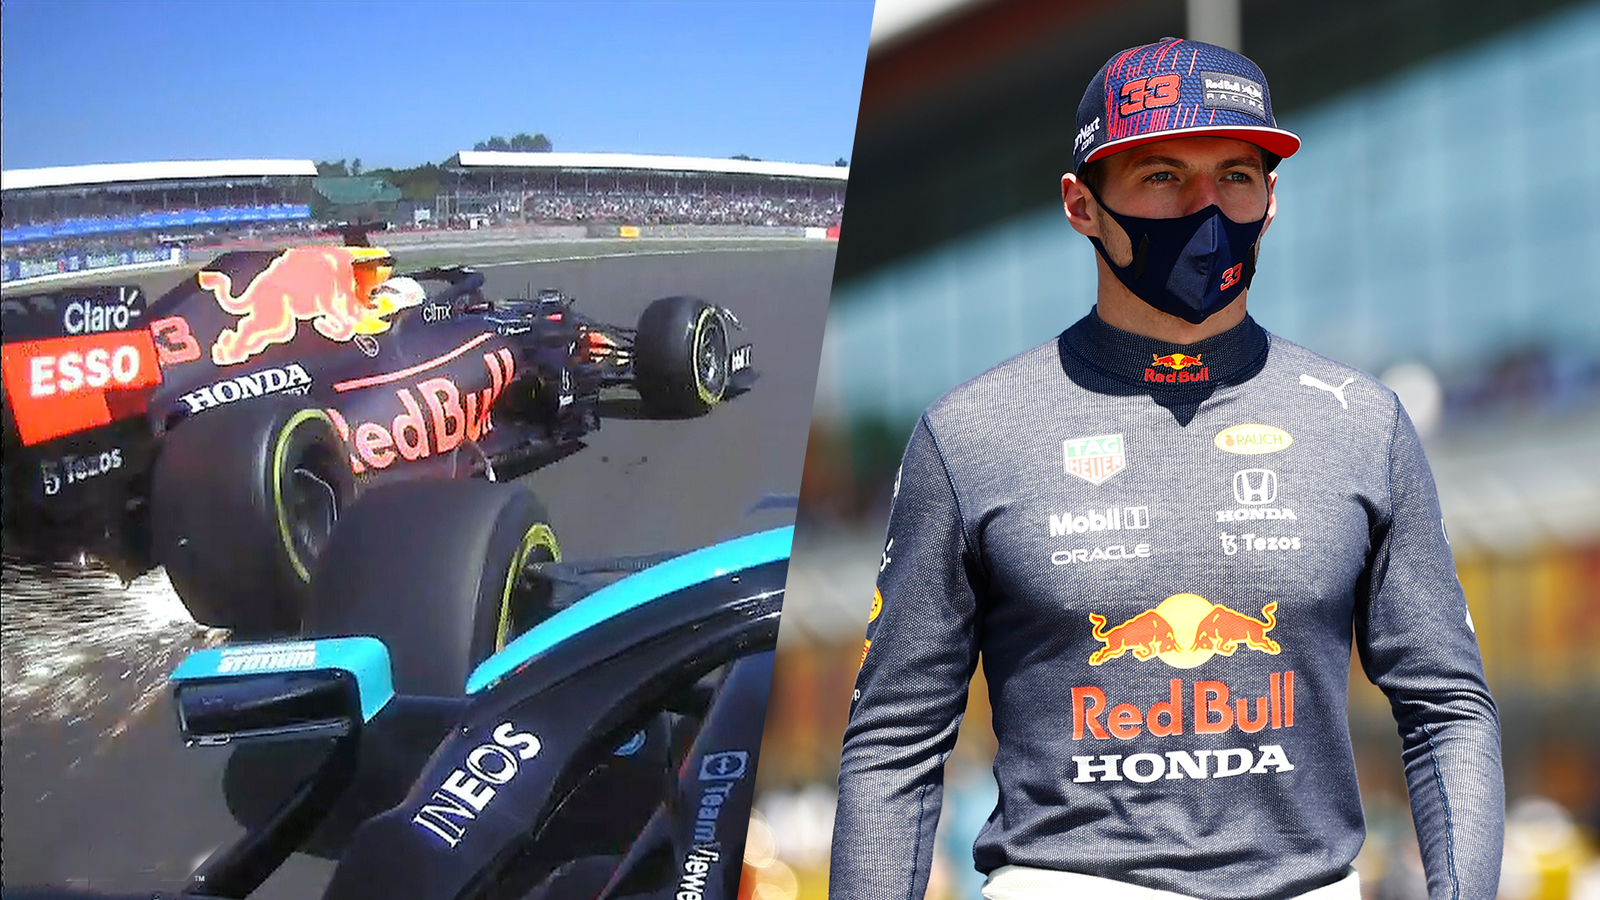 Max Verstappen crash repair bill £1.3m say Red Bull, as they continue to mull request to review Lewis Hamilton penalty